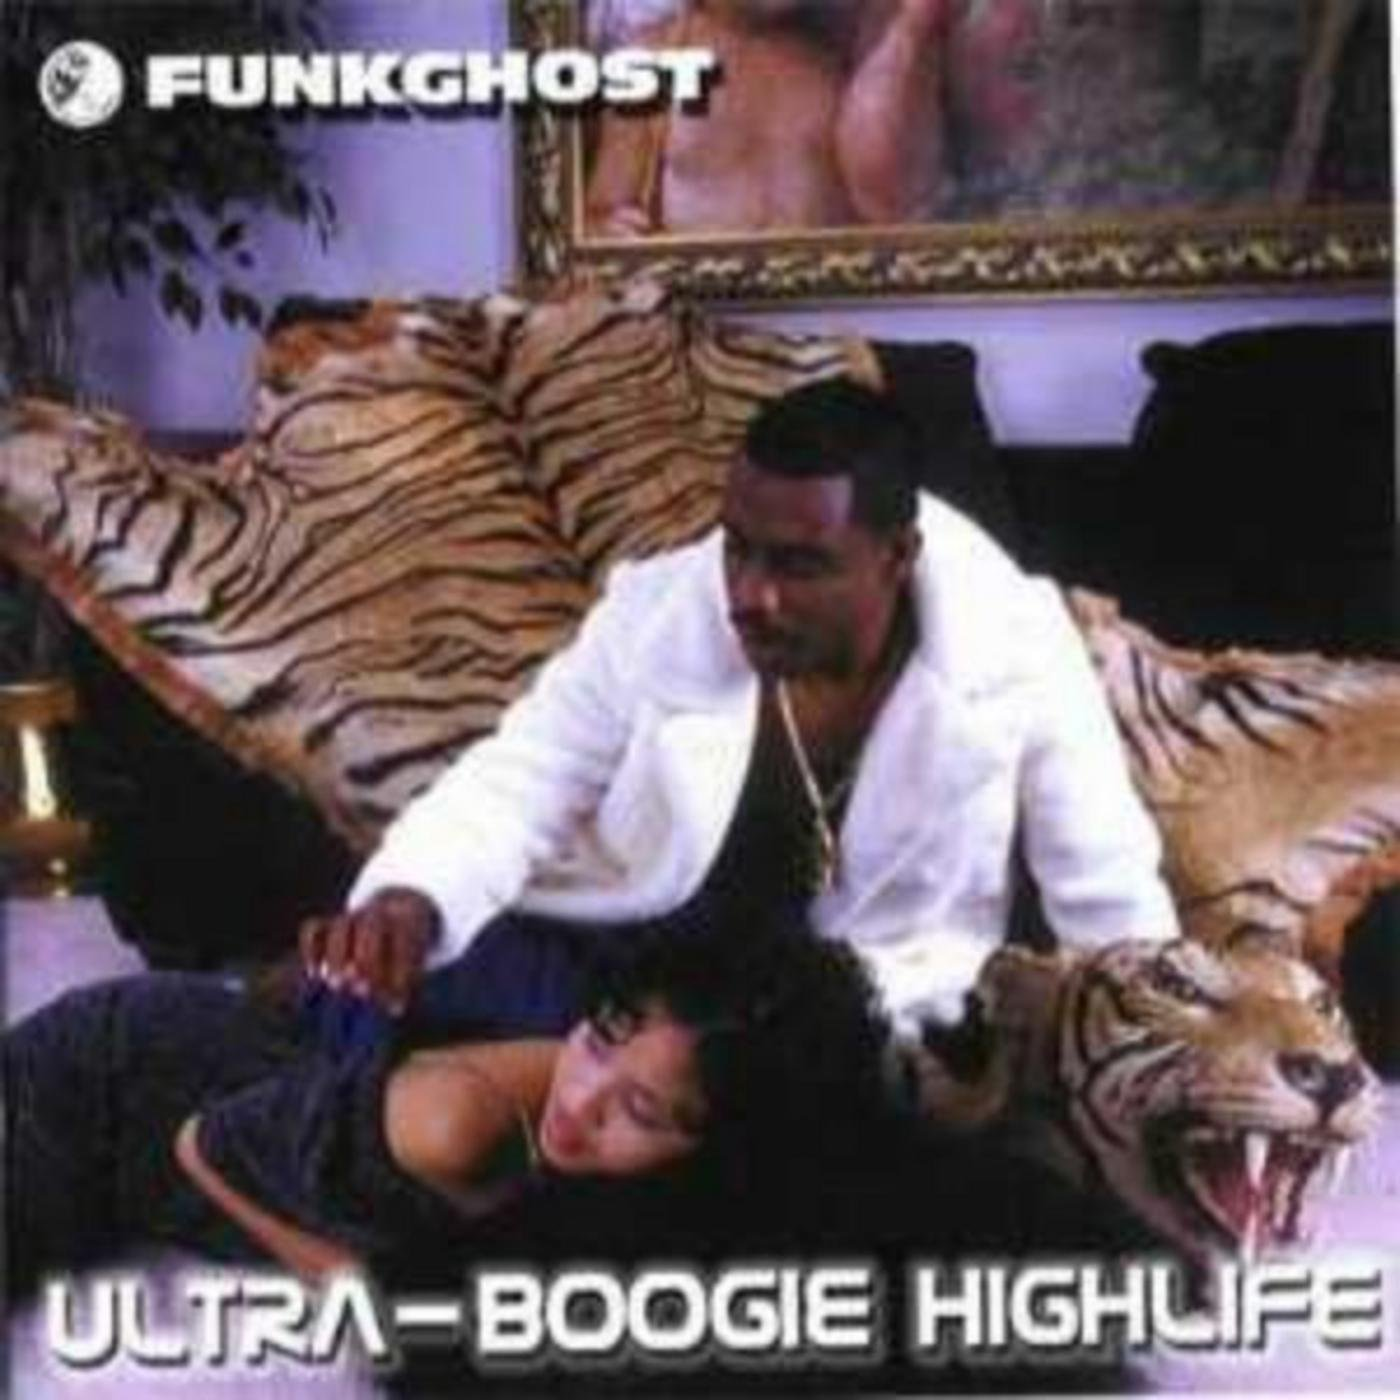 Funkghost - Ultra Boogie Highlife (2020) [FLAC] Download